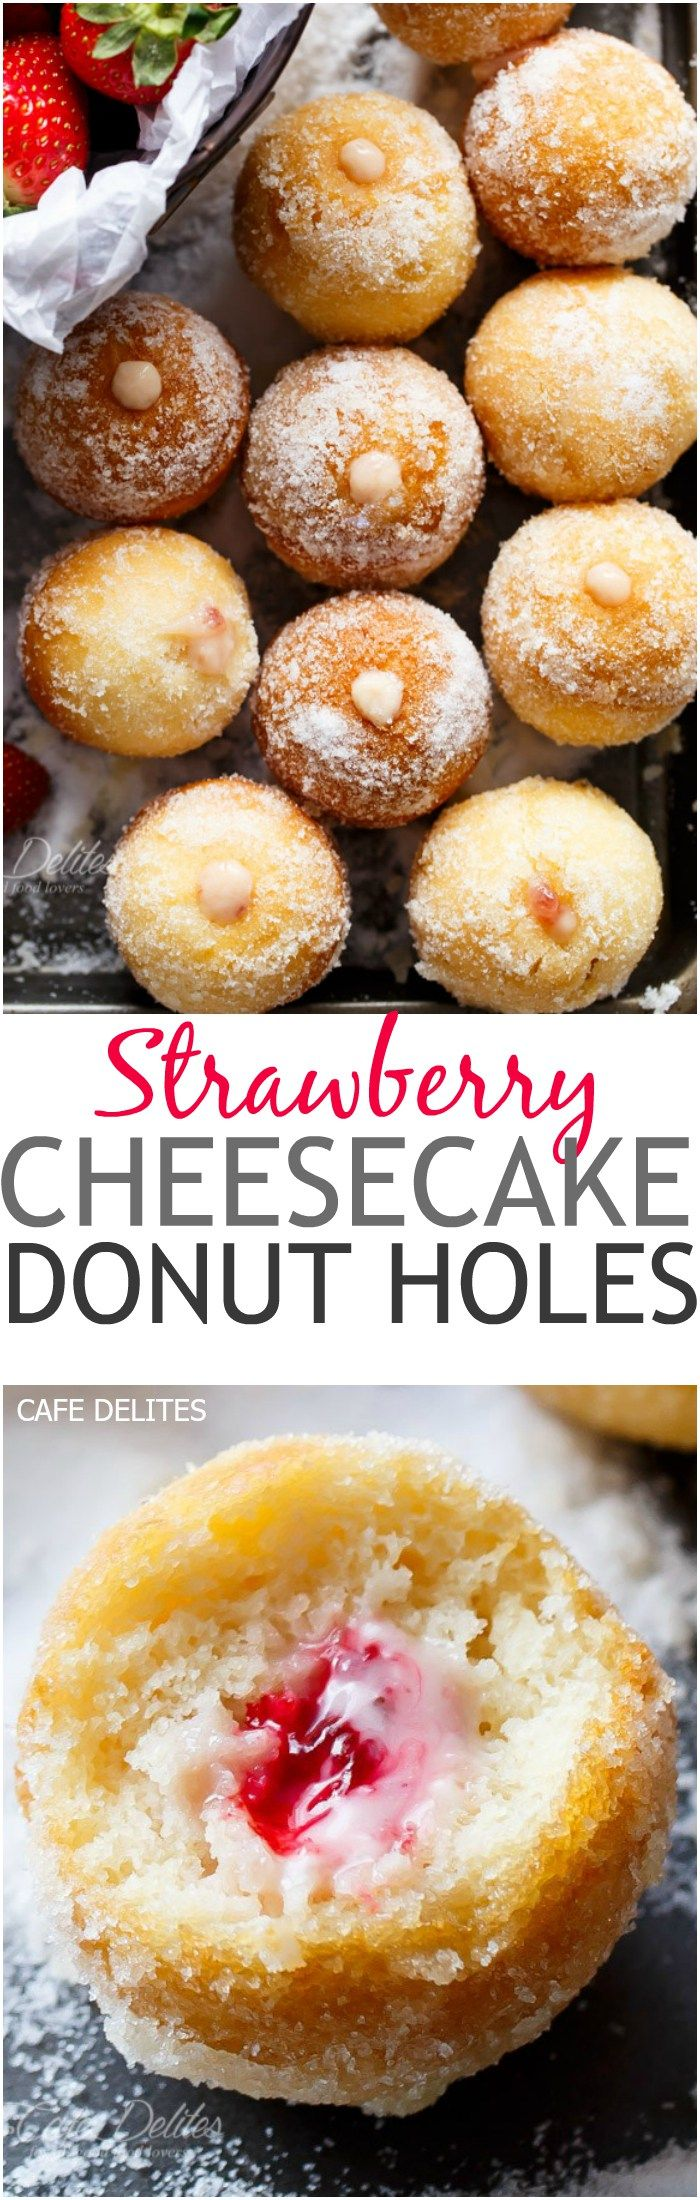 Strawberry Cheesecake Donut Holes - Filled with sweet strawberry and creamy cheesecake filling! Enjoy with no guilt!